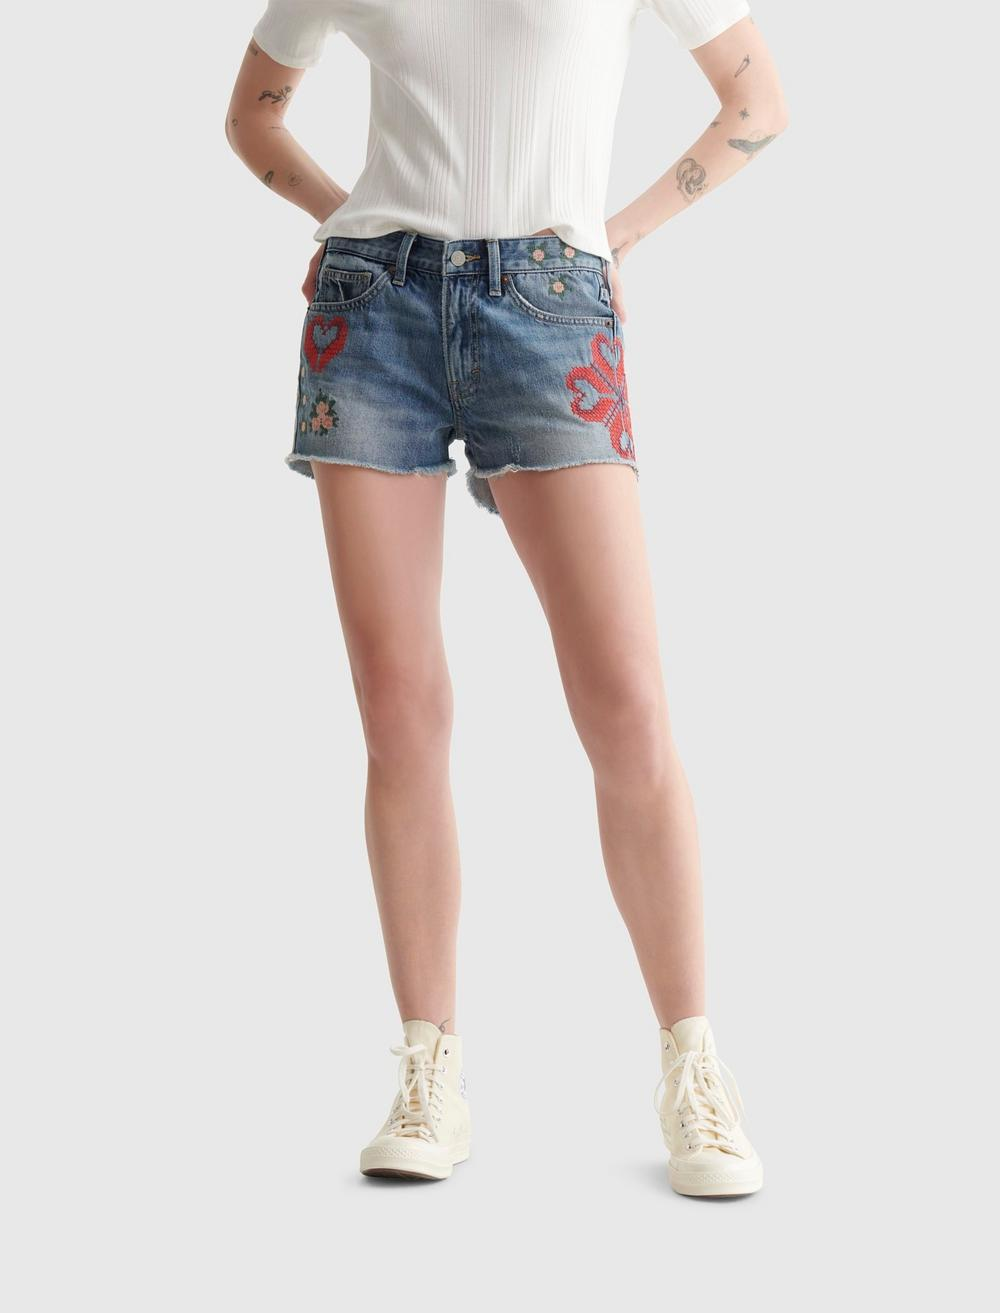 EMBROIDERED MID RISE BOY SHORT, image 2